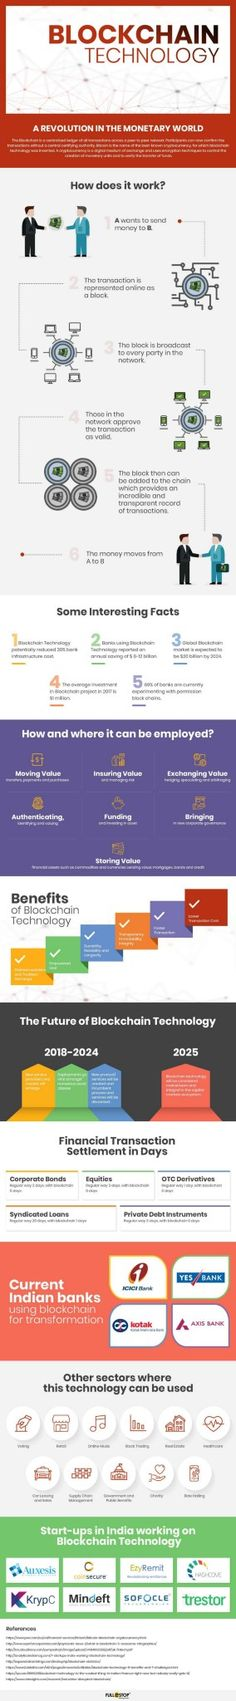 Blockchain Technology Explained Infographic CoinInfoNews Bitcoin Ethereum Litec - Litecoin - Ideas of Litecoin - Blockchain Technology Explained Infographic CoinInfoNews Bitcoin Ethereum Litecoin Cryptocurrency Enterprise Business, Technology World, Finance Blog, How To Attract Customers, Bitcoin Cryptocurrency, Bitcoin Price, Blockchain Technology, Information Technology, Things That Bounce